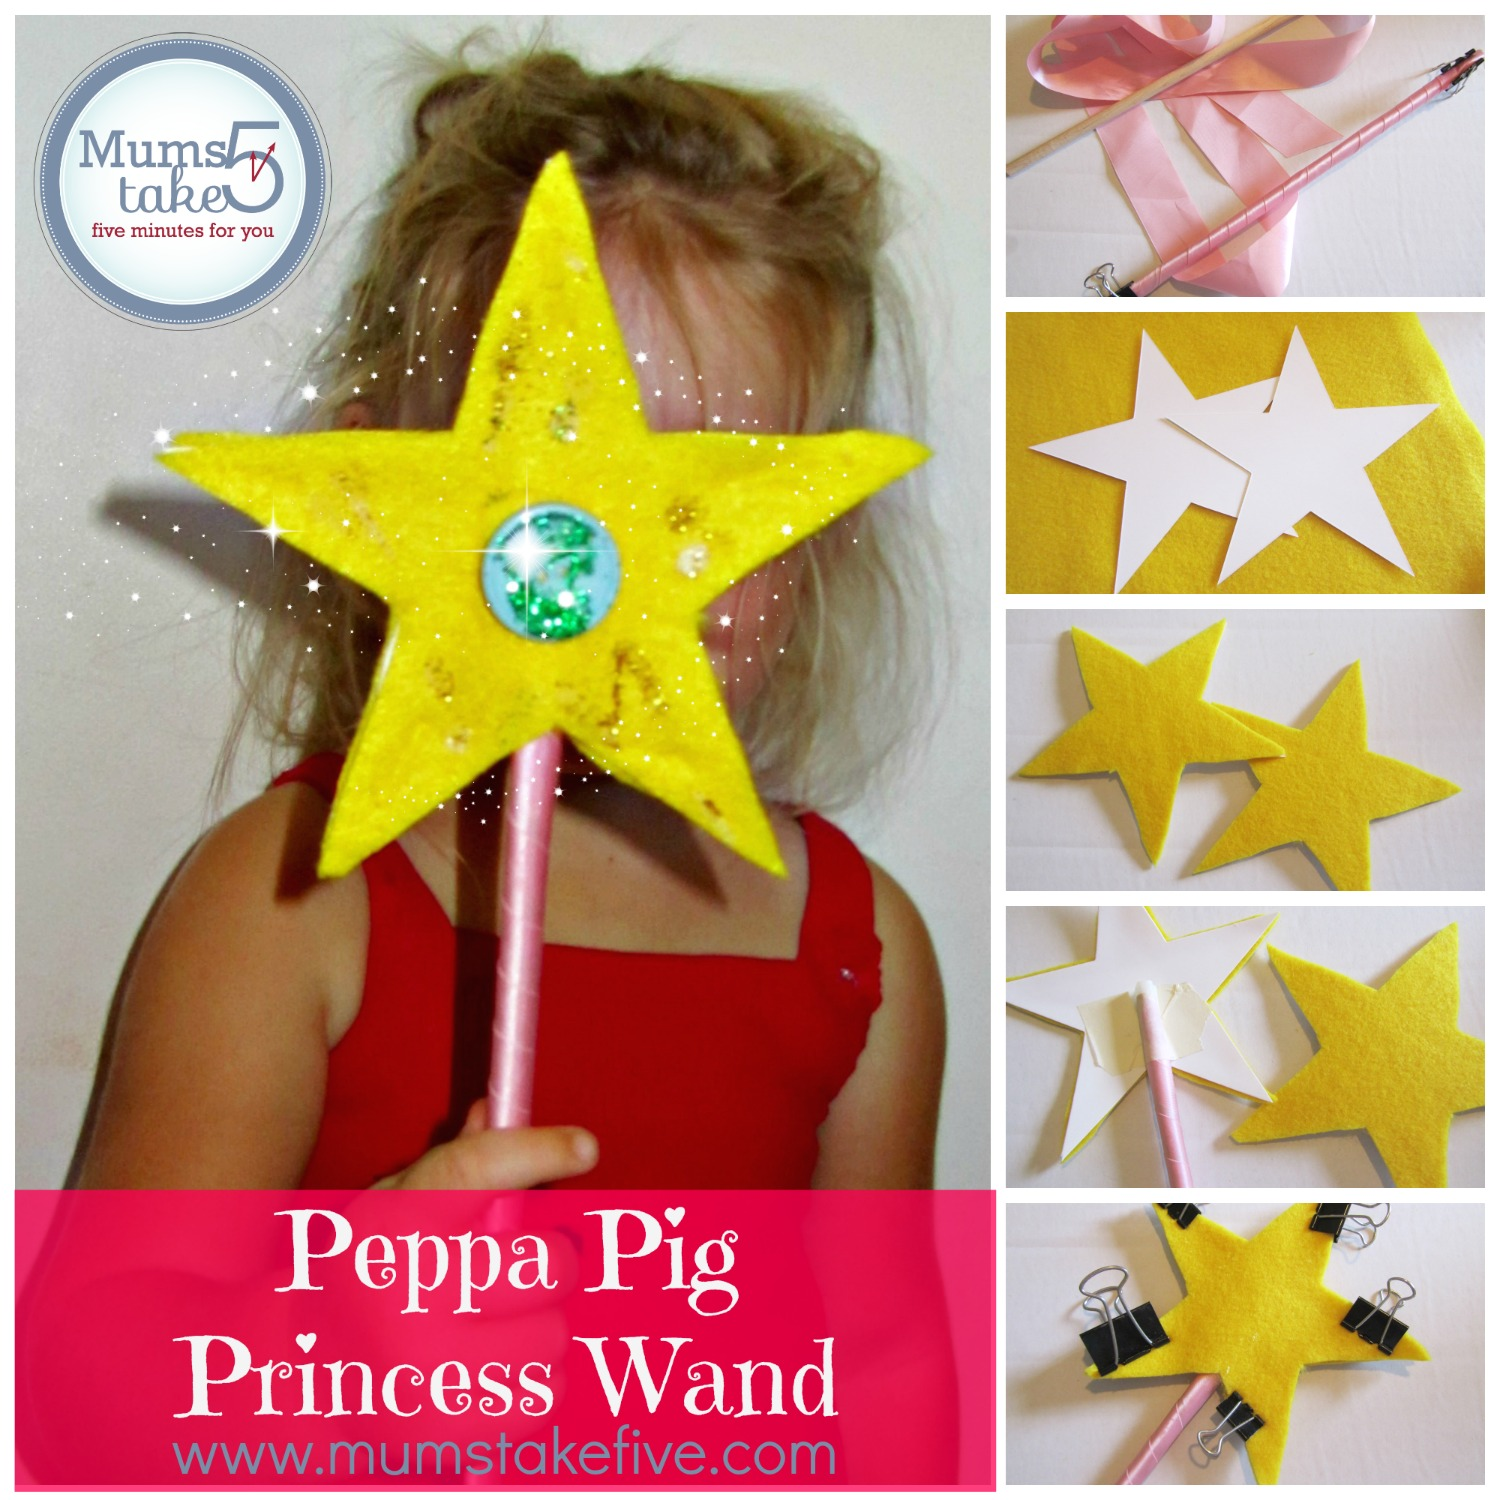 peppa pig princess wand